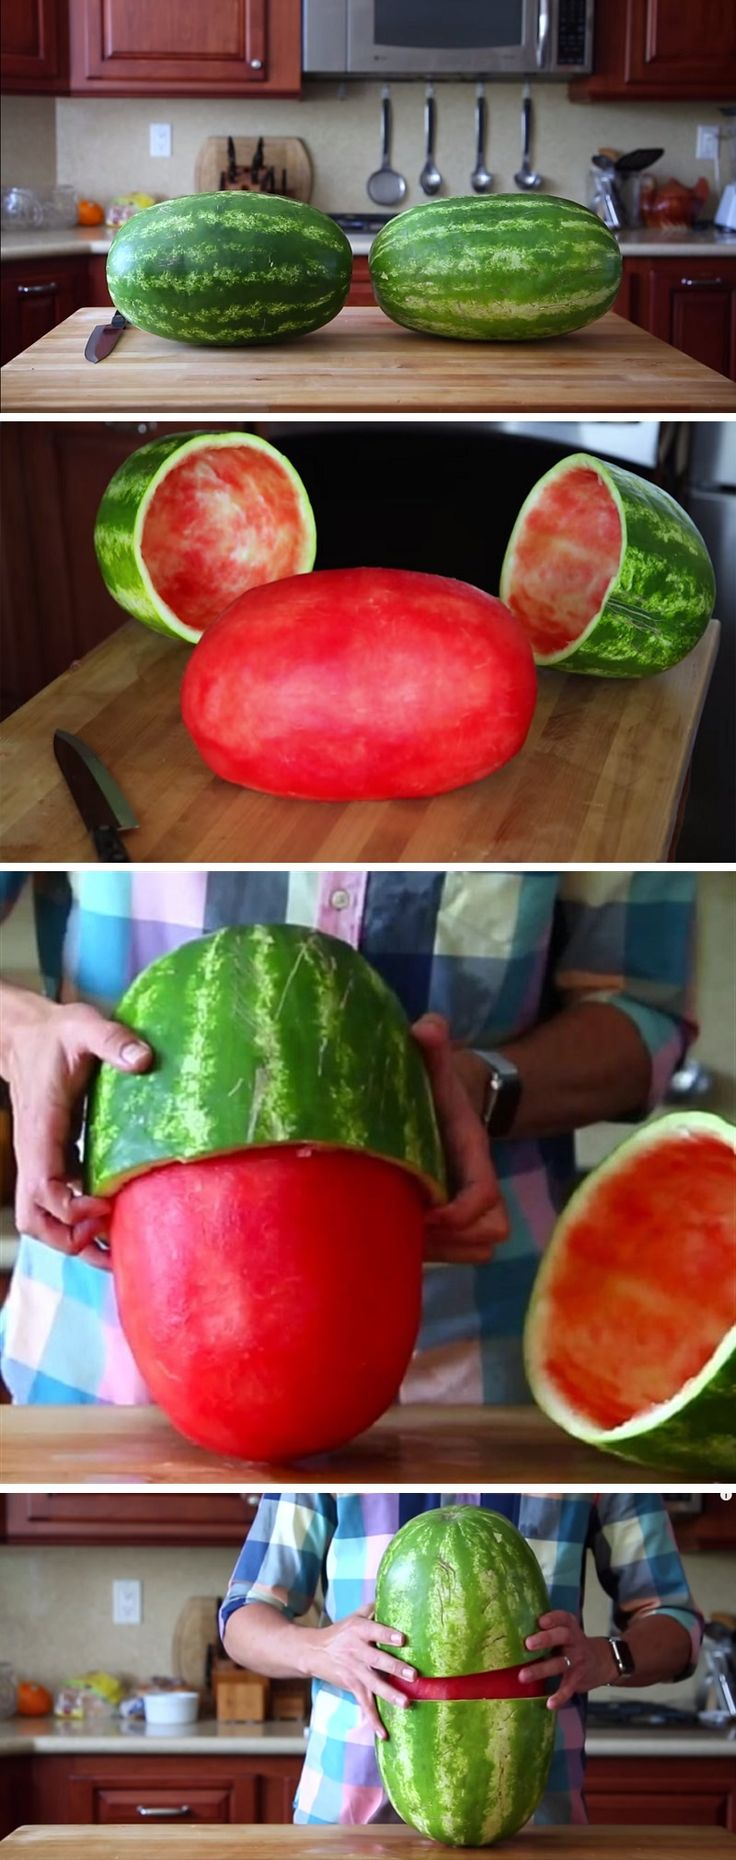 This watermelon trick is amazing! Sure to impress any party guests!